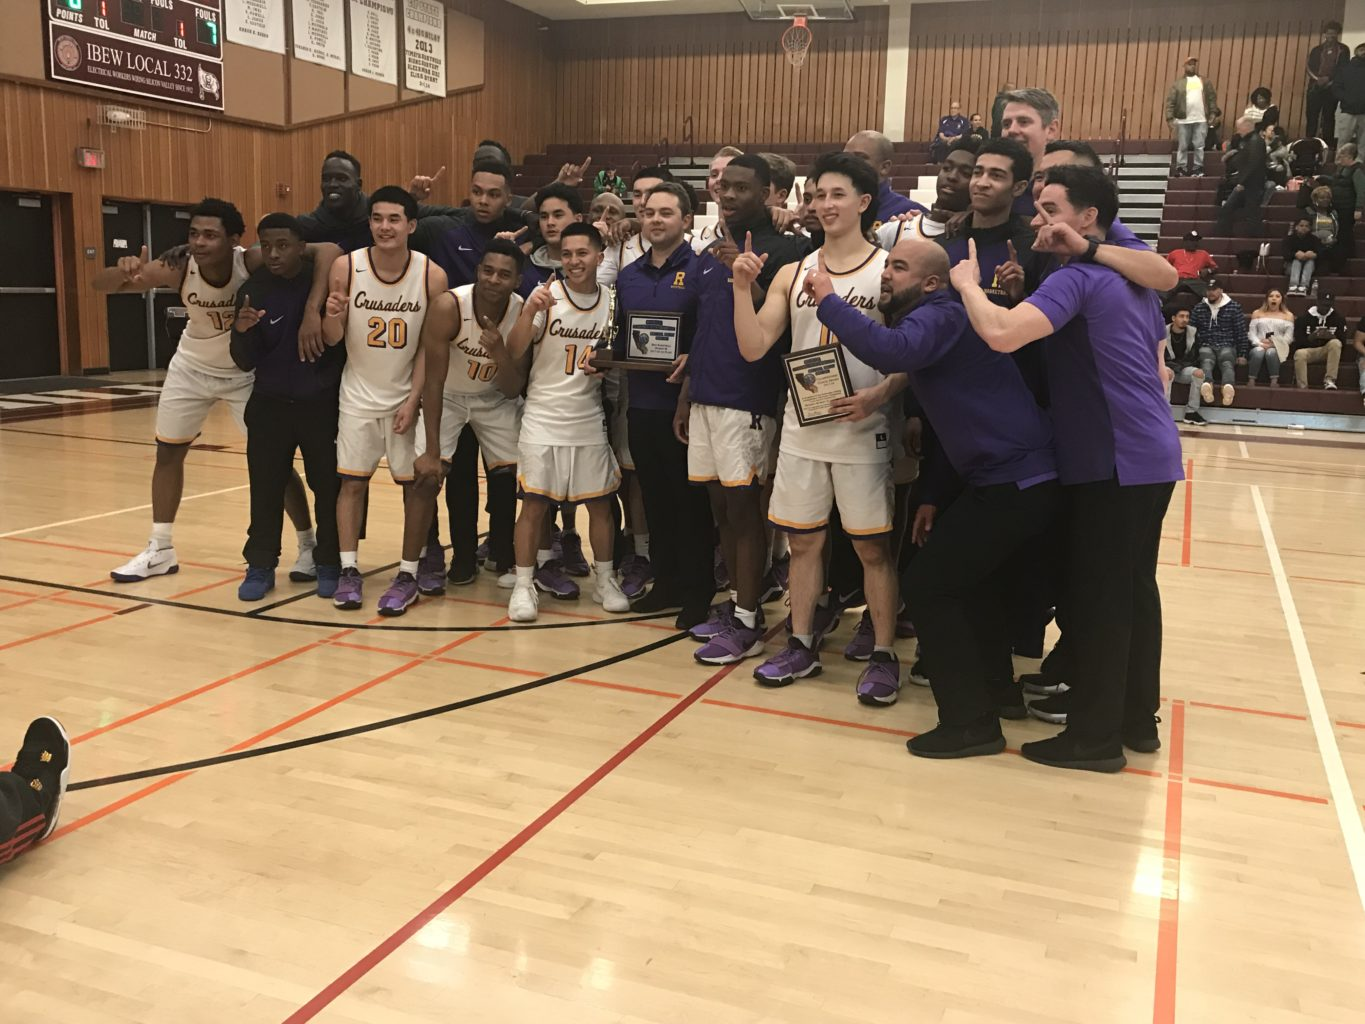 Riordan boys basketball won its section on Saturday. (Ethan Kassel/Special to S.F. Examiner)